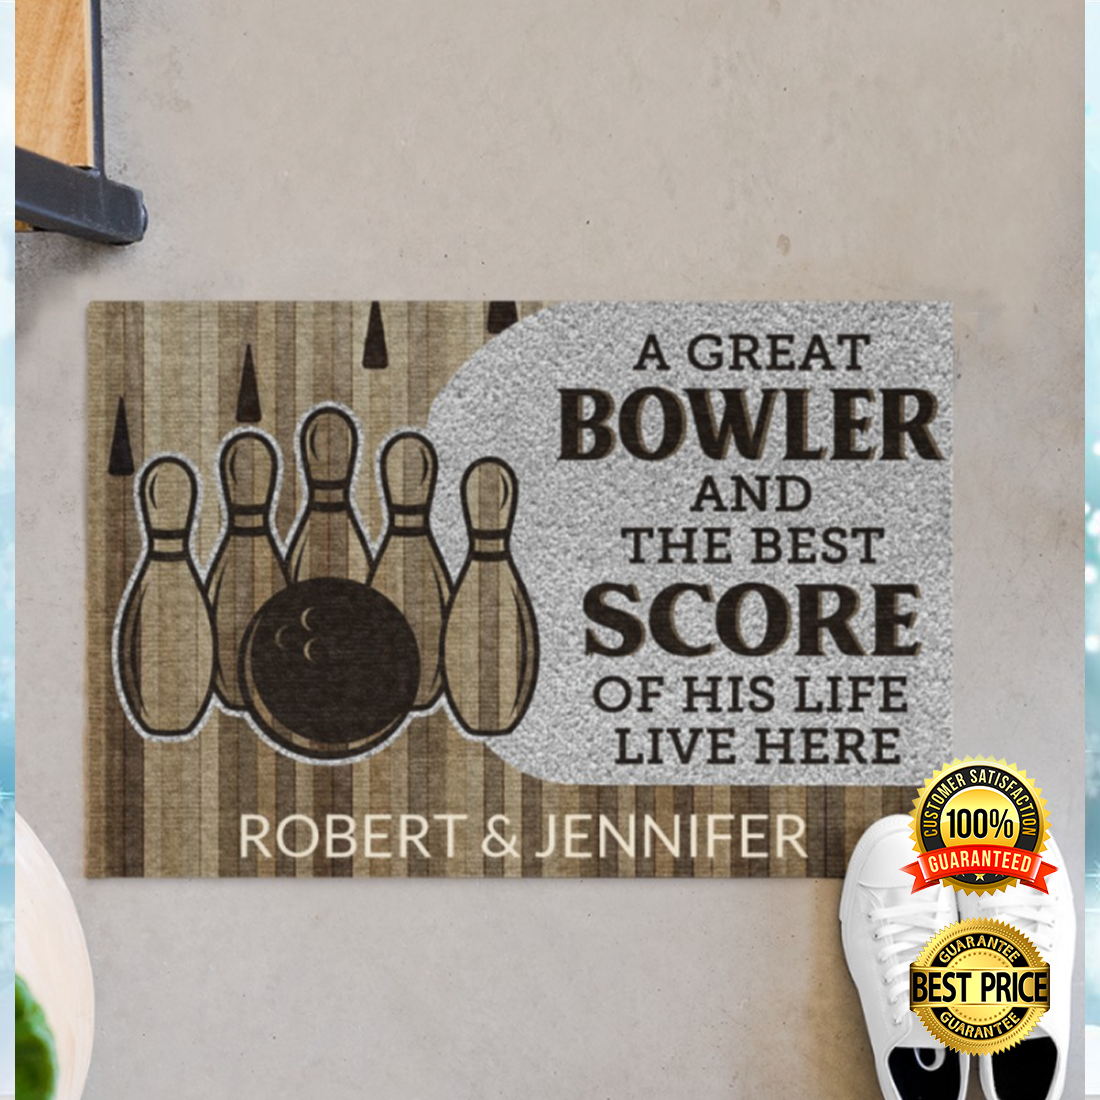 PERSONALIZED A GREAT BOWLER AND THE BEST SCORE OF HIS LIFE LIVE HERE DOORMAT 5